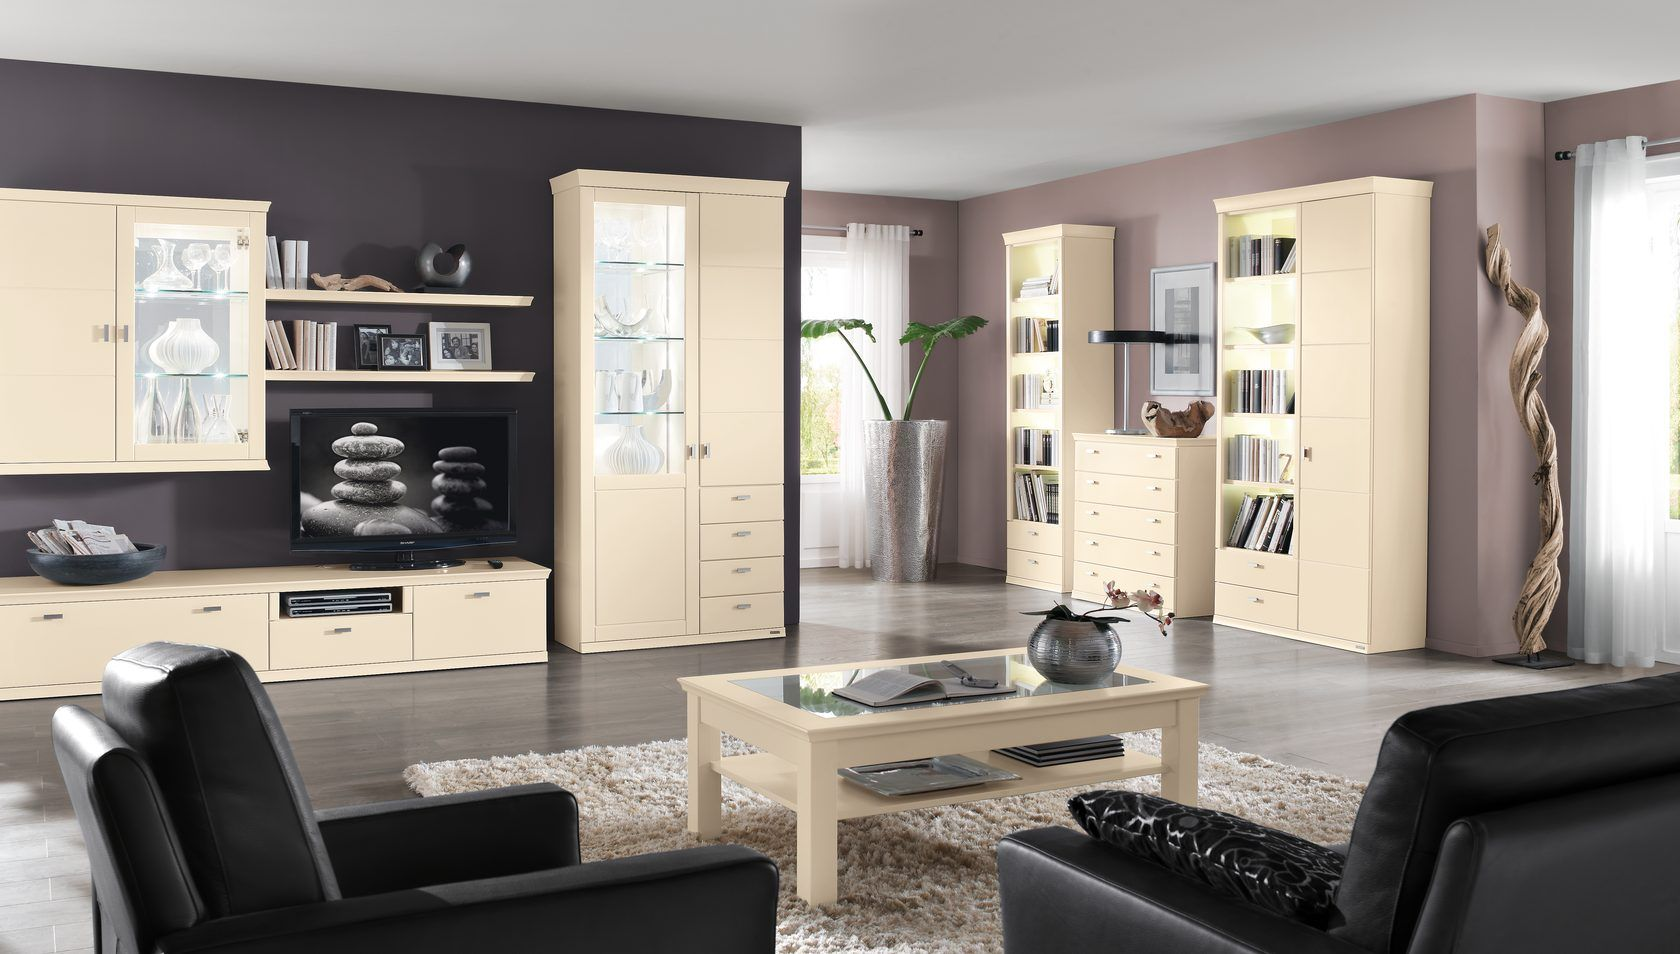 korsika wohnzimmer wohnzimmer wohnwelten musterring international musterring m bel. Black Bedroom Furniture Sets. Home Design Ideas